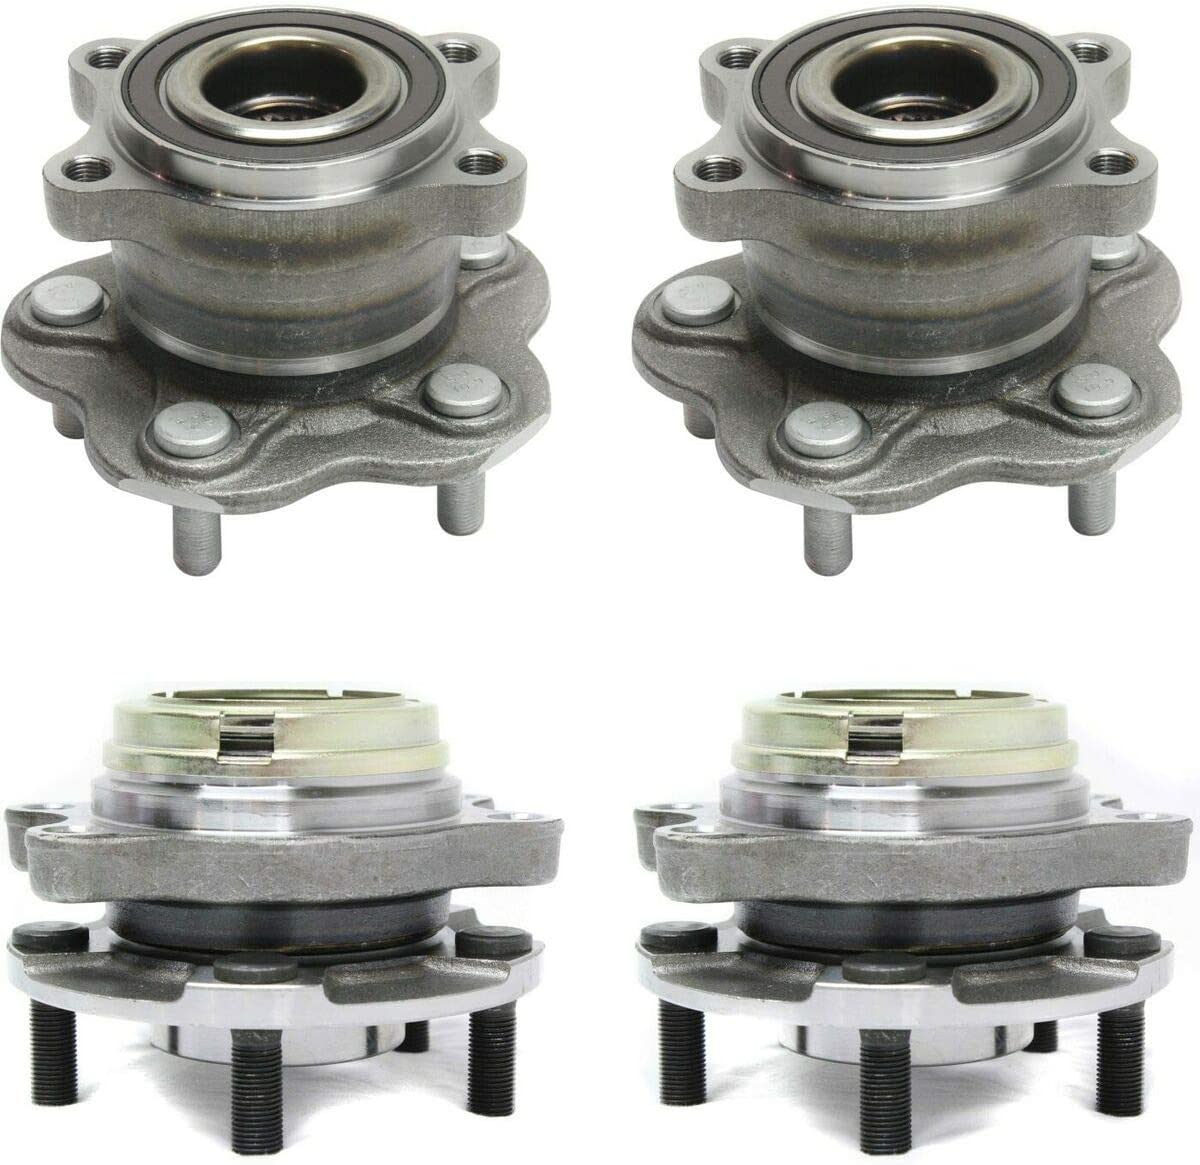 Wheel Hub Compatible with Memphis Mall 2003-2007 Front Murano Max 71% OFF Rear Nissan and